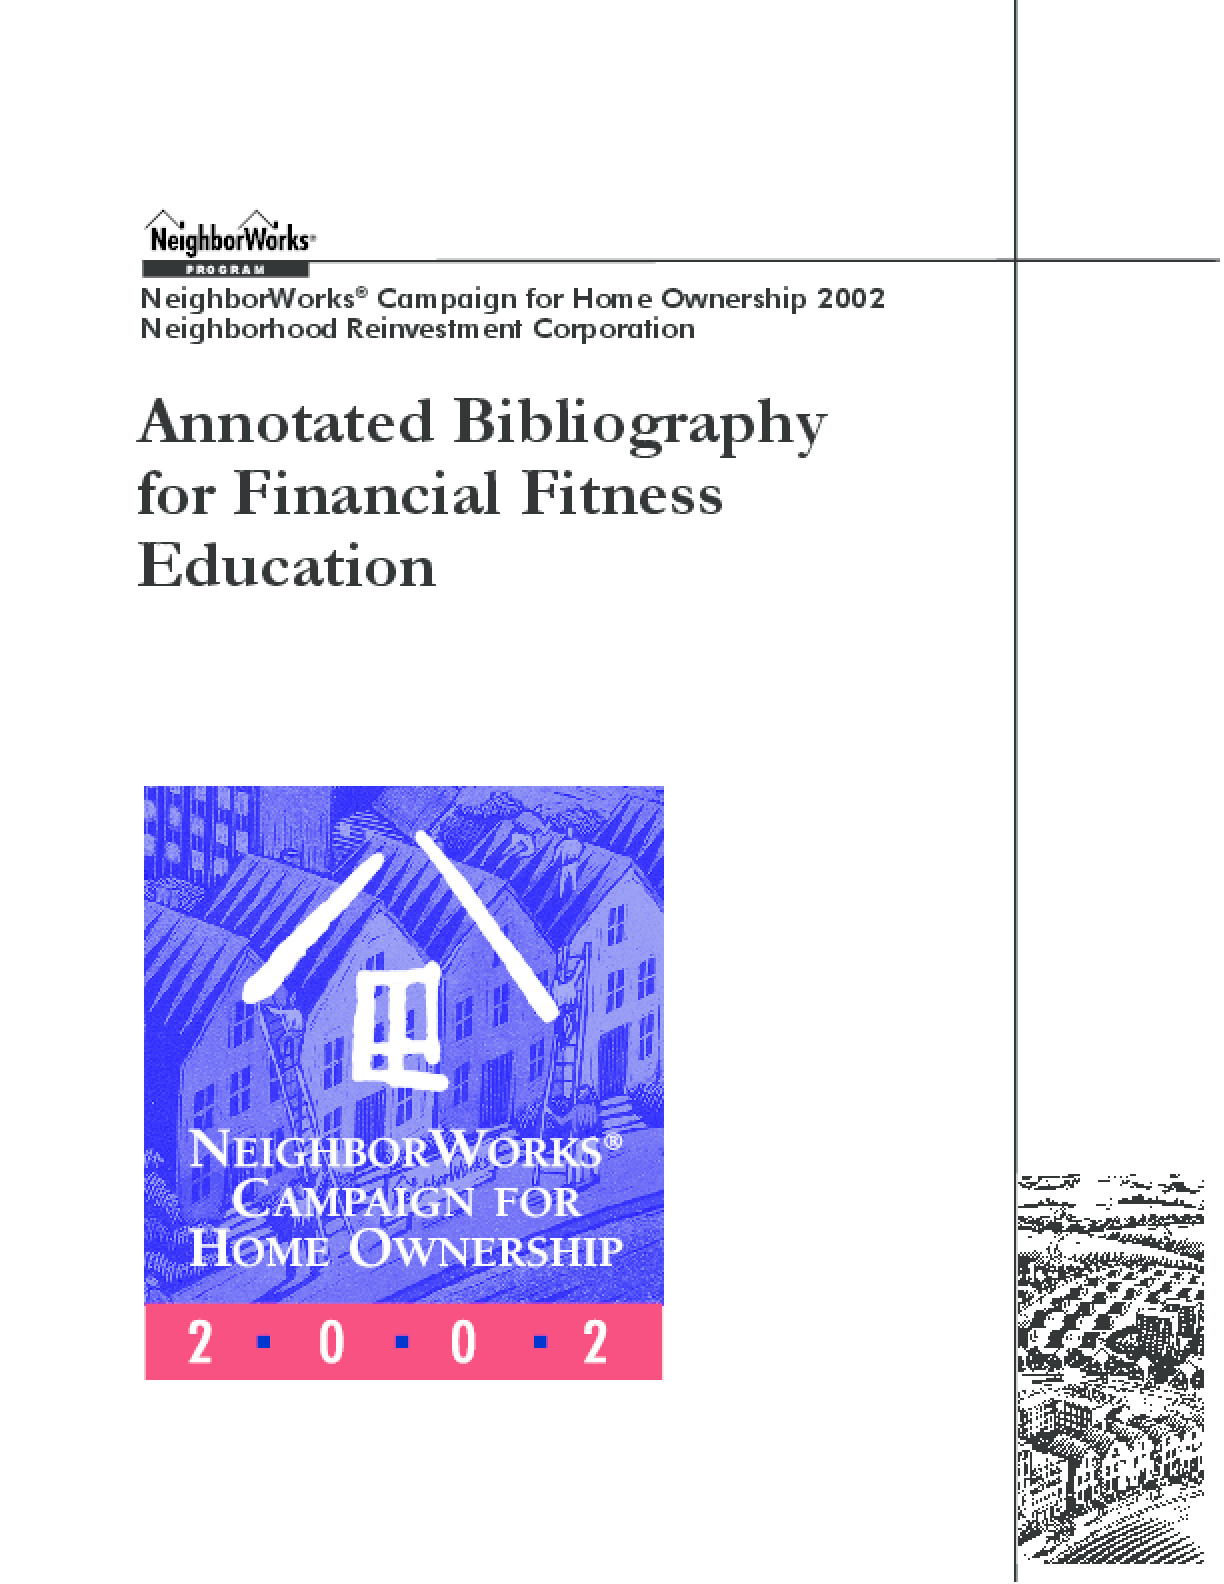 An Annotated Bibliography for Financial Fitness Education